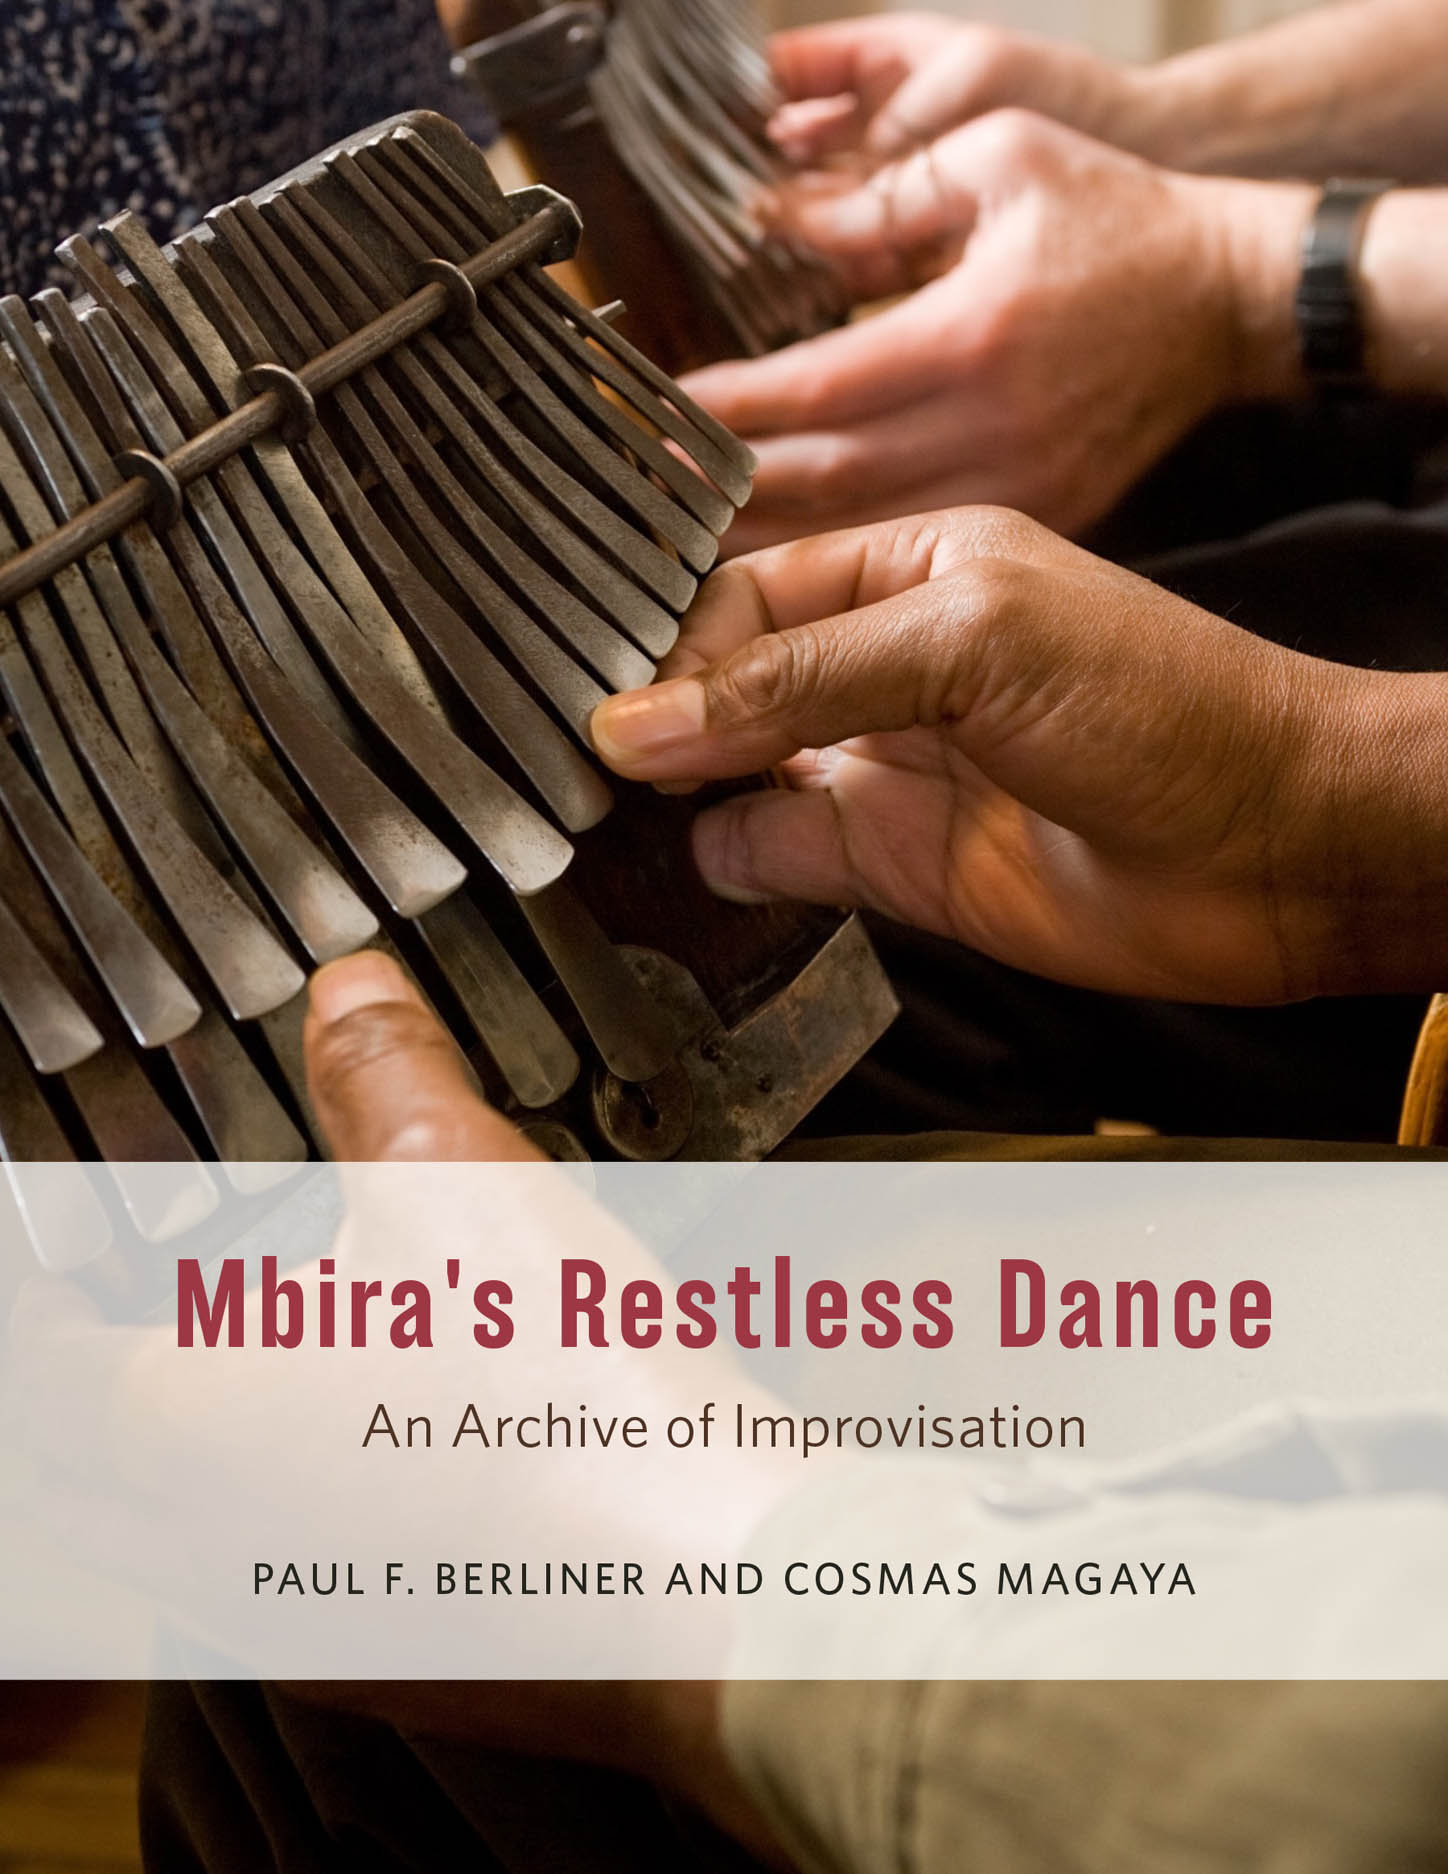 Mbira's Restless Dance: An Archive of Improvisation